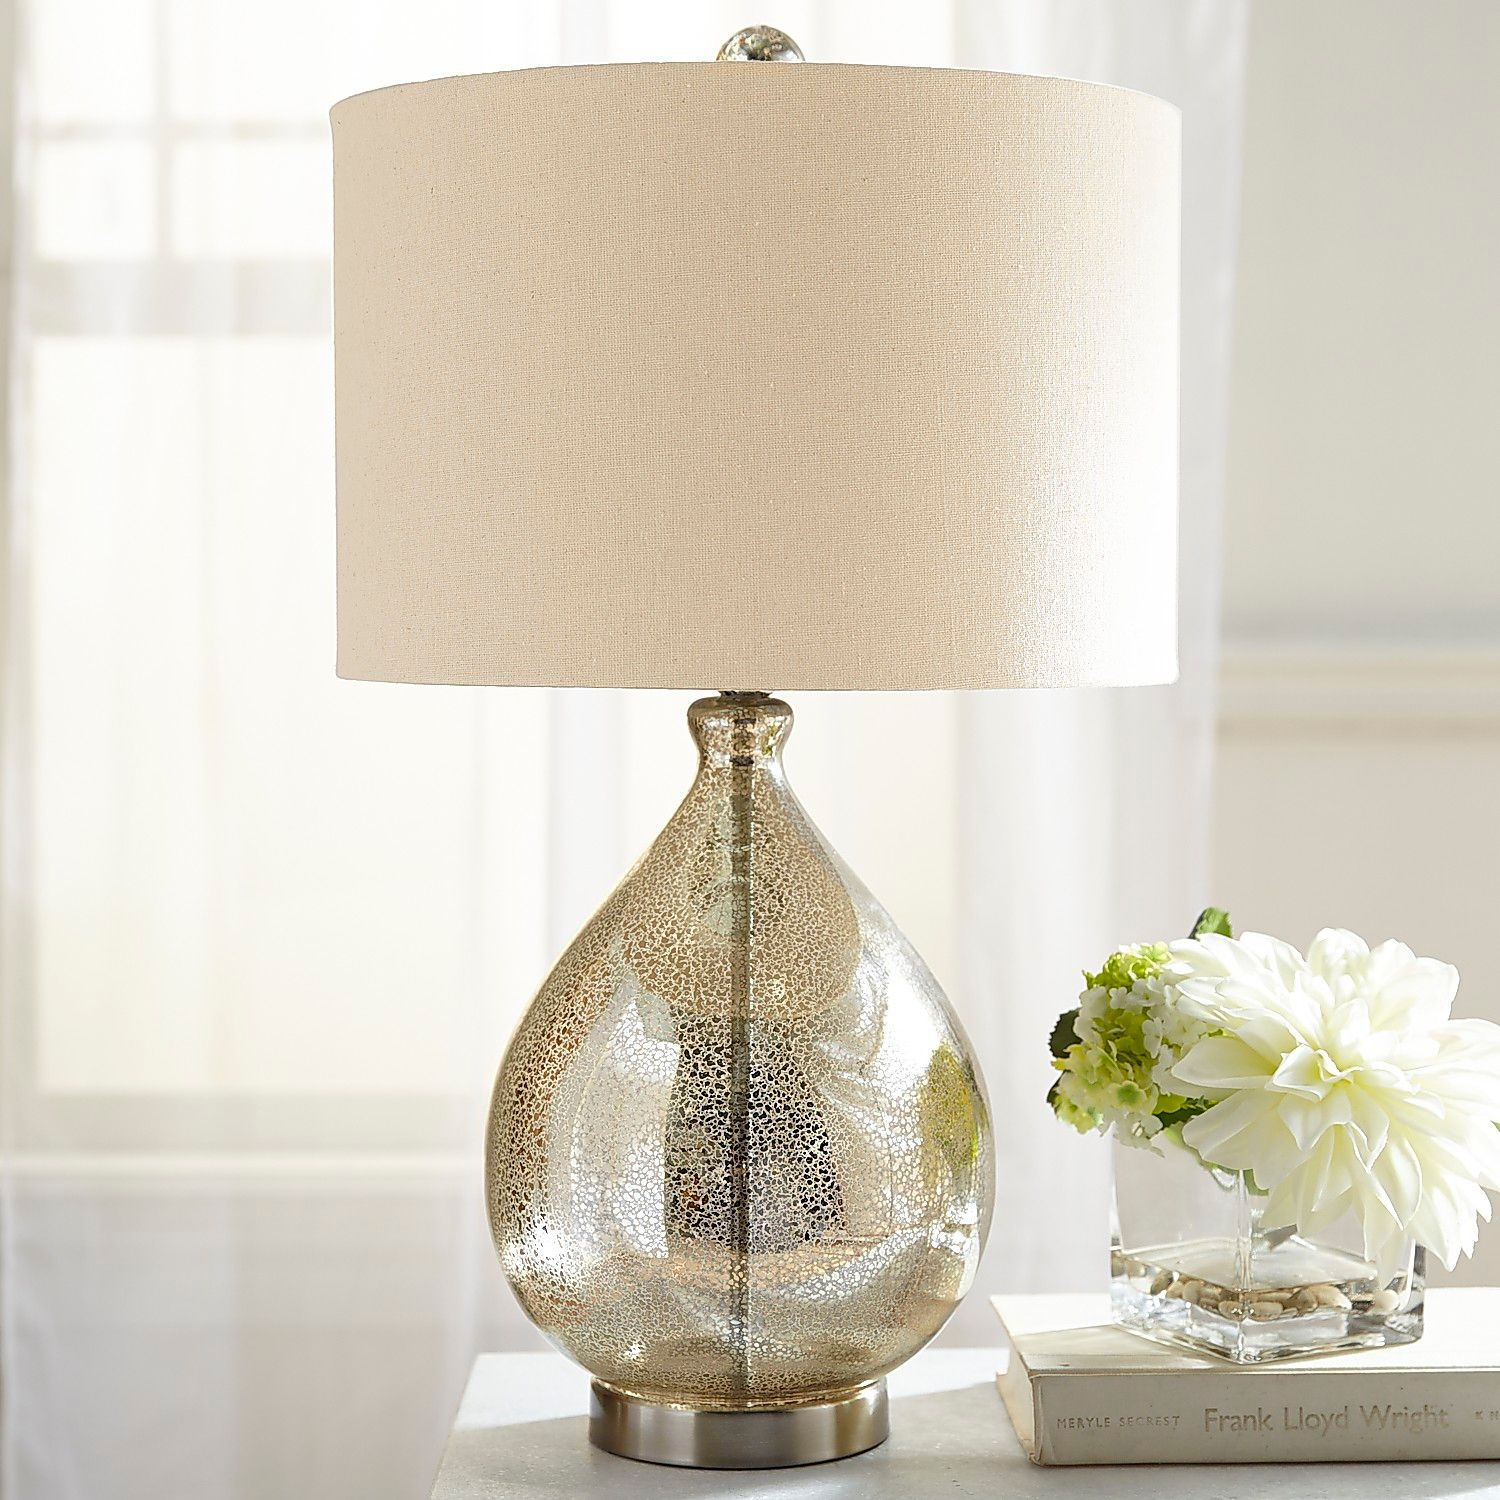 teardrop luxe table lamp pier imports one accent lamps beach patio dining clearance bunnings outdoor sun lounges glass with six chairs hidden chinese shades metal coffee drawers